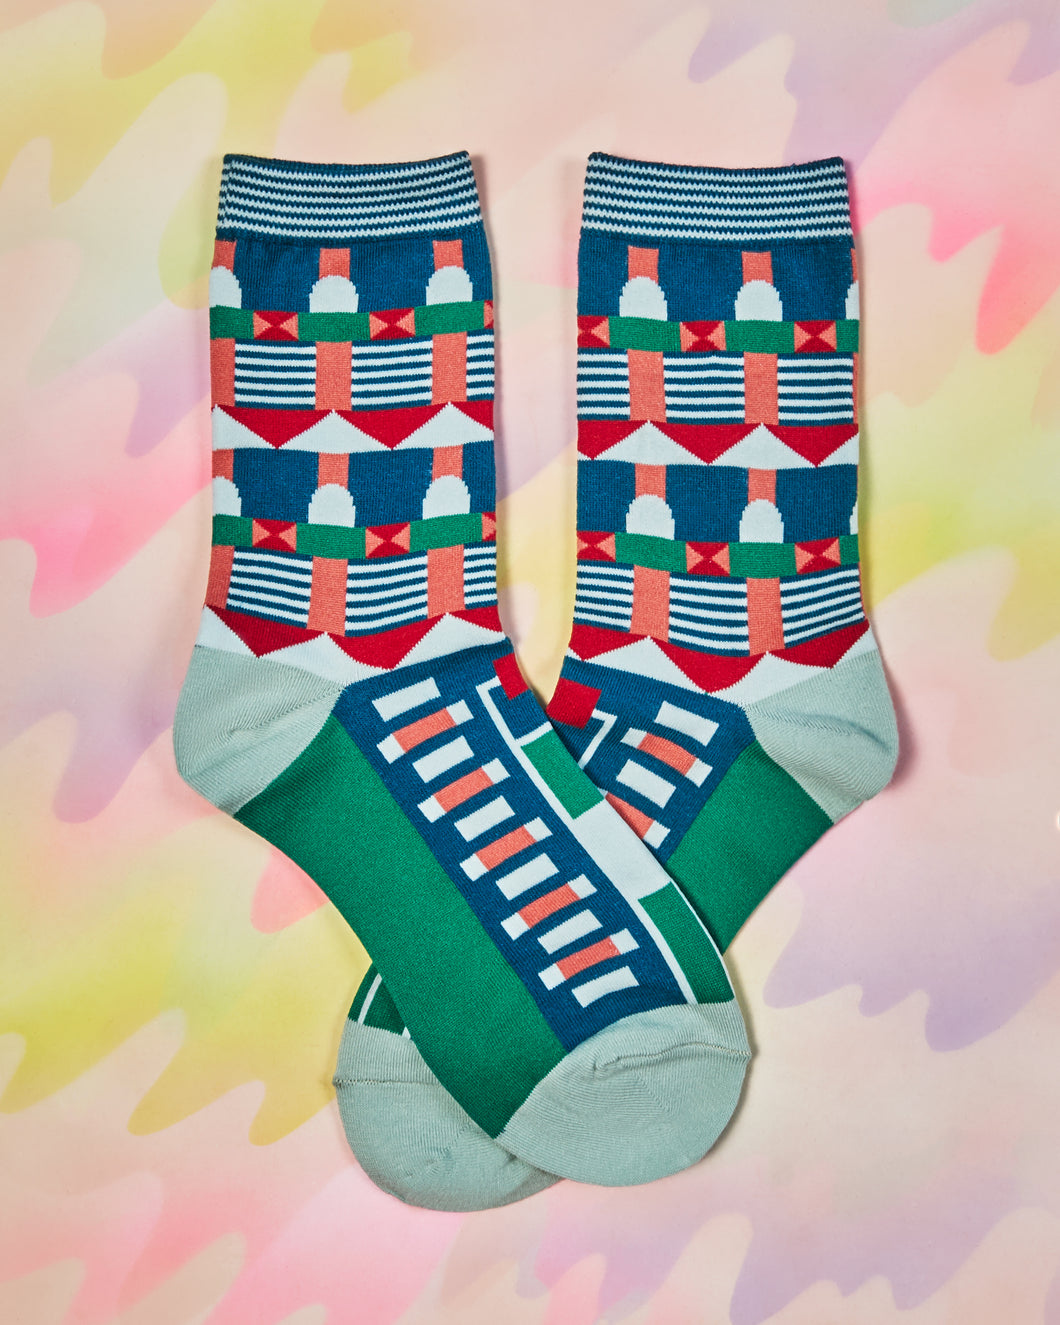 Grand Hotel Peacock Socks